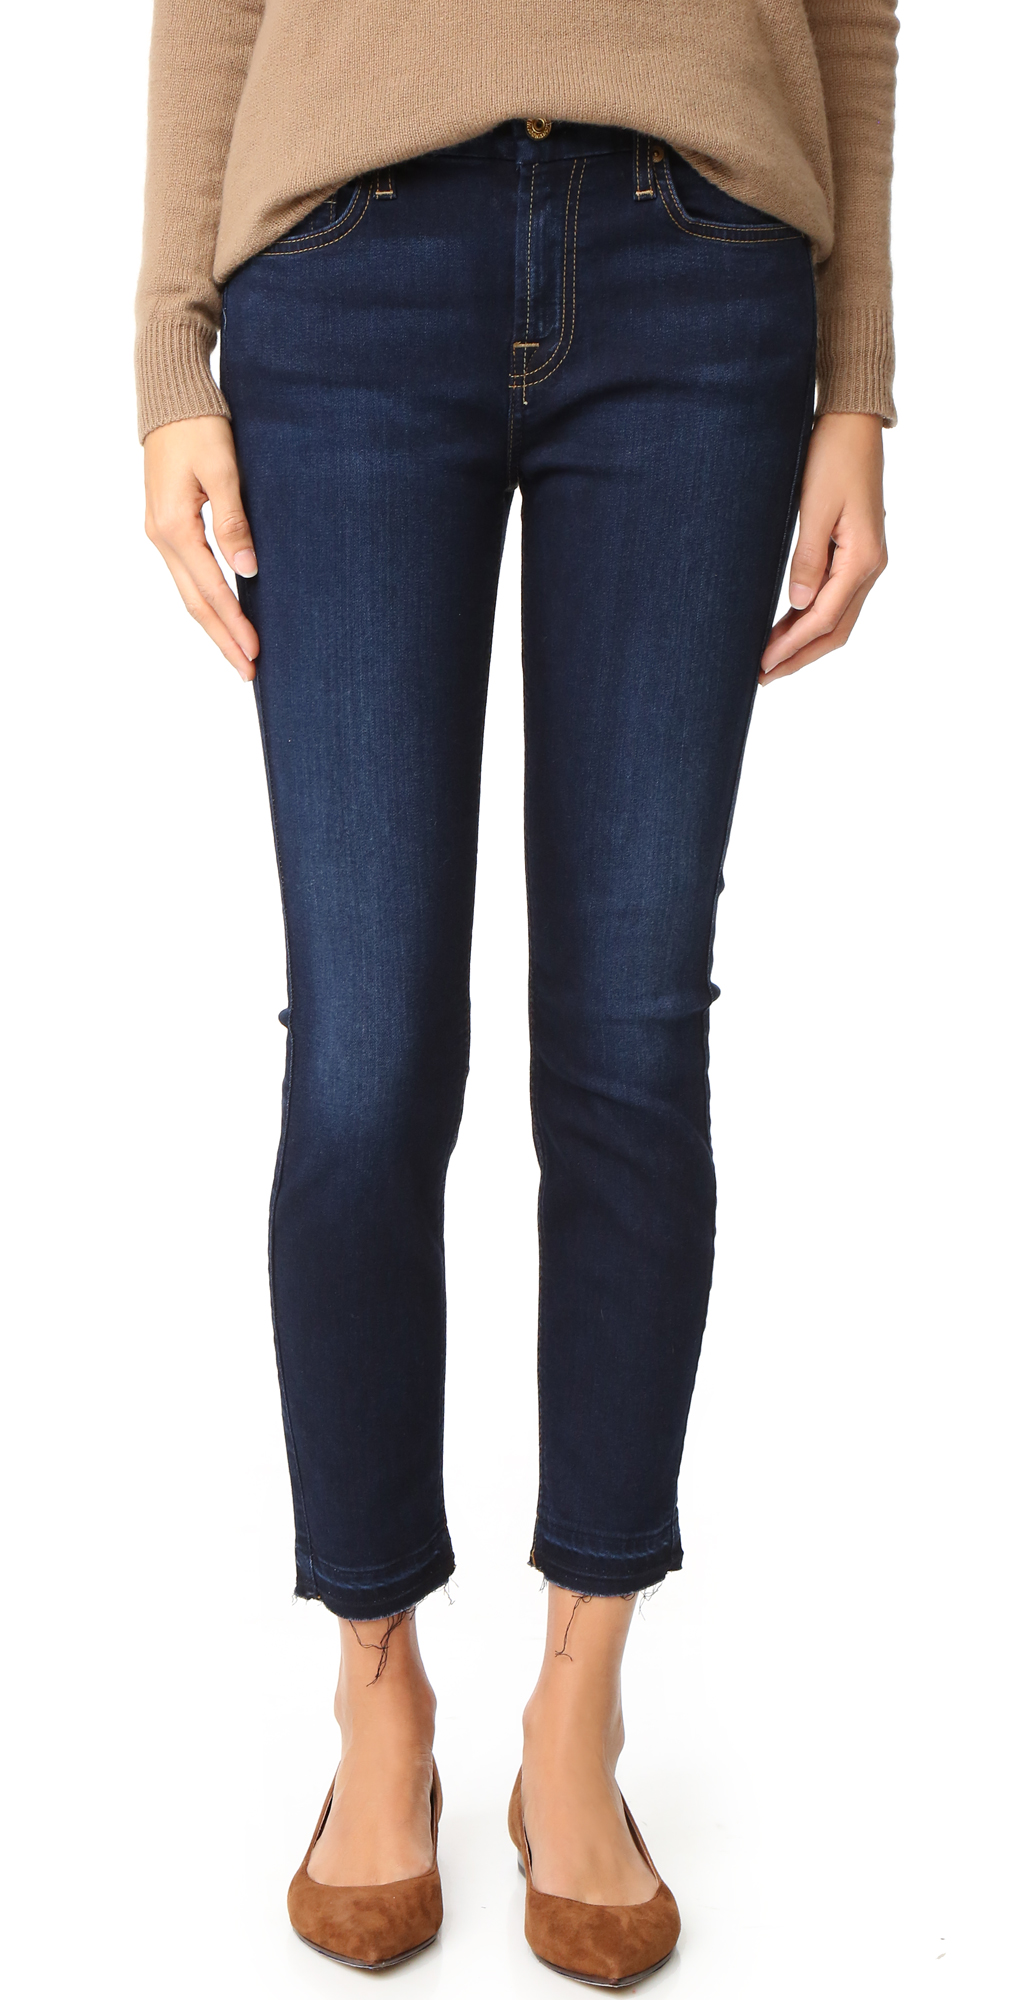 The b(air) Ankle Skinny Jeans 7 For All Mankind